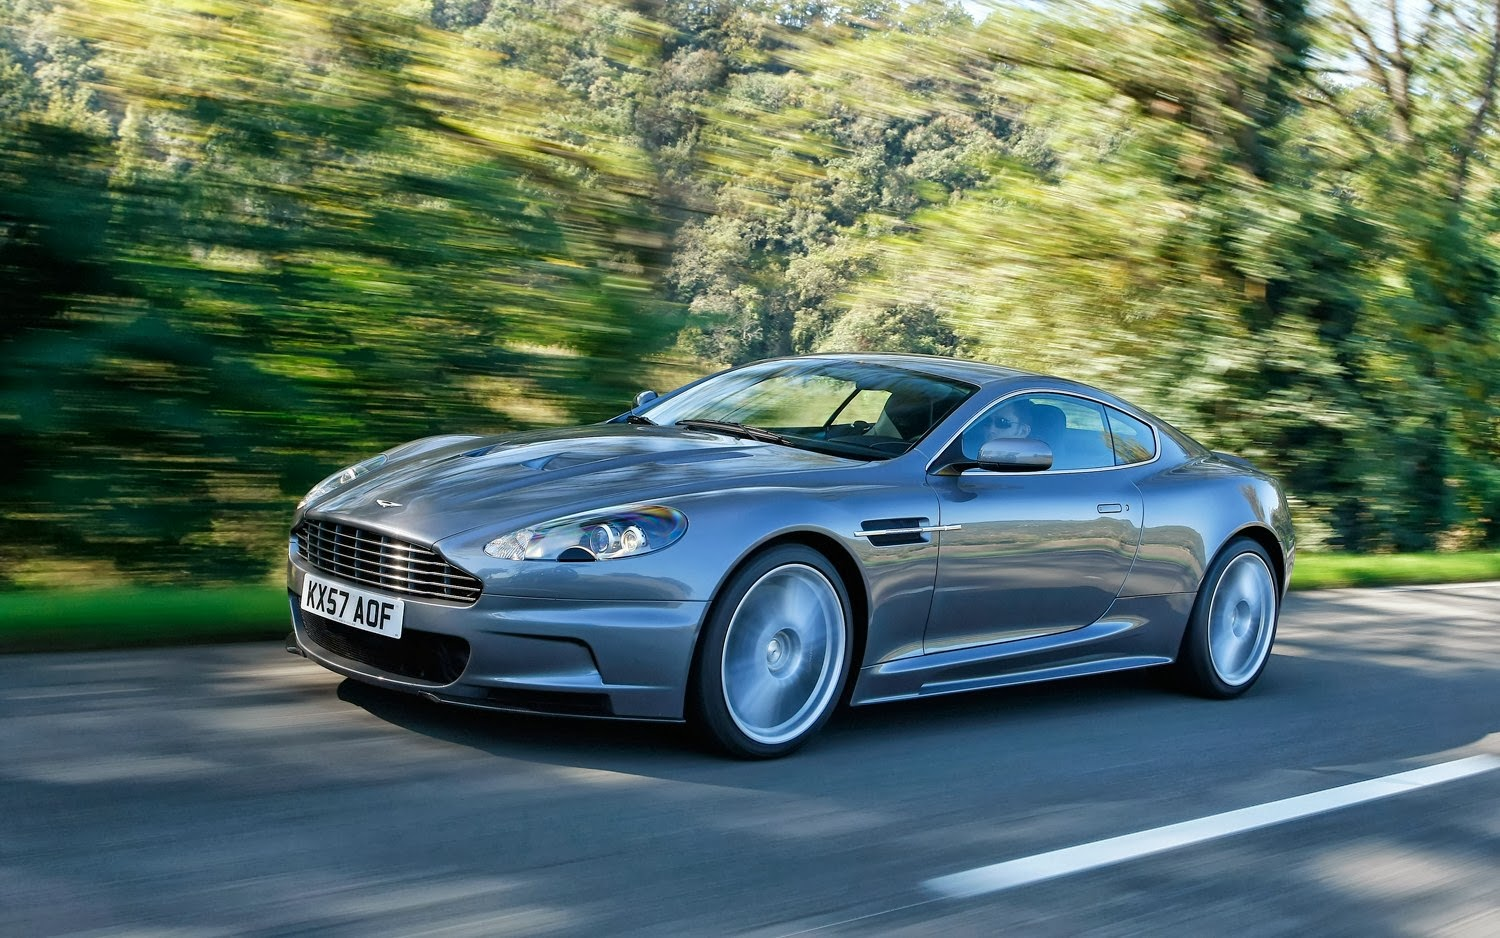 aston martin dbs ultimate edition wallpaper prices. Black Bedroom Furniture Sets. Home Design Ideas